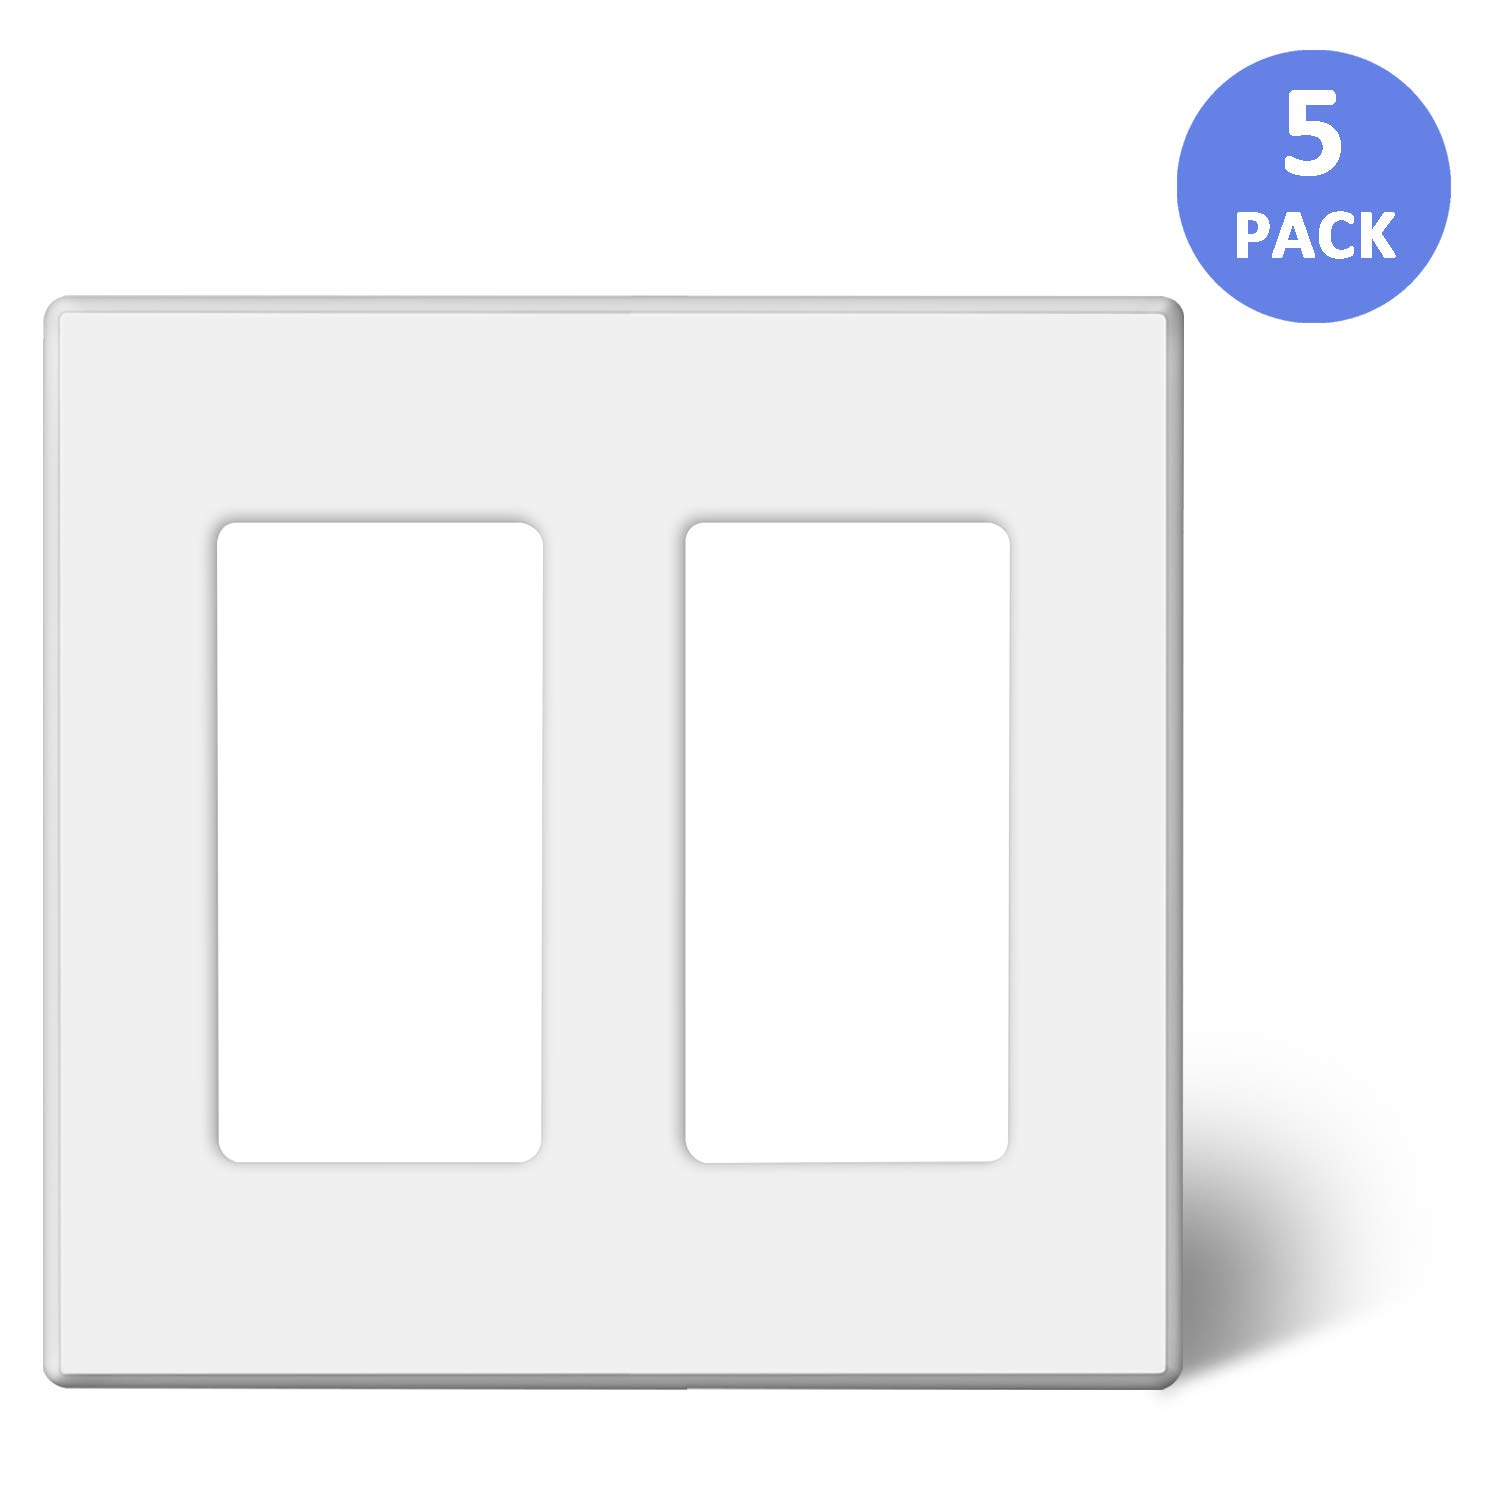 BESTTEN [5 Pack] 2-Gang Screwless Wall Plate, USWP2 Elegance White Series, Standard Outlet Cover for Light Switch, Dimmer, Sensor, Timer, and Receptacle, Residential and Commercial, UL Listed